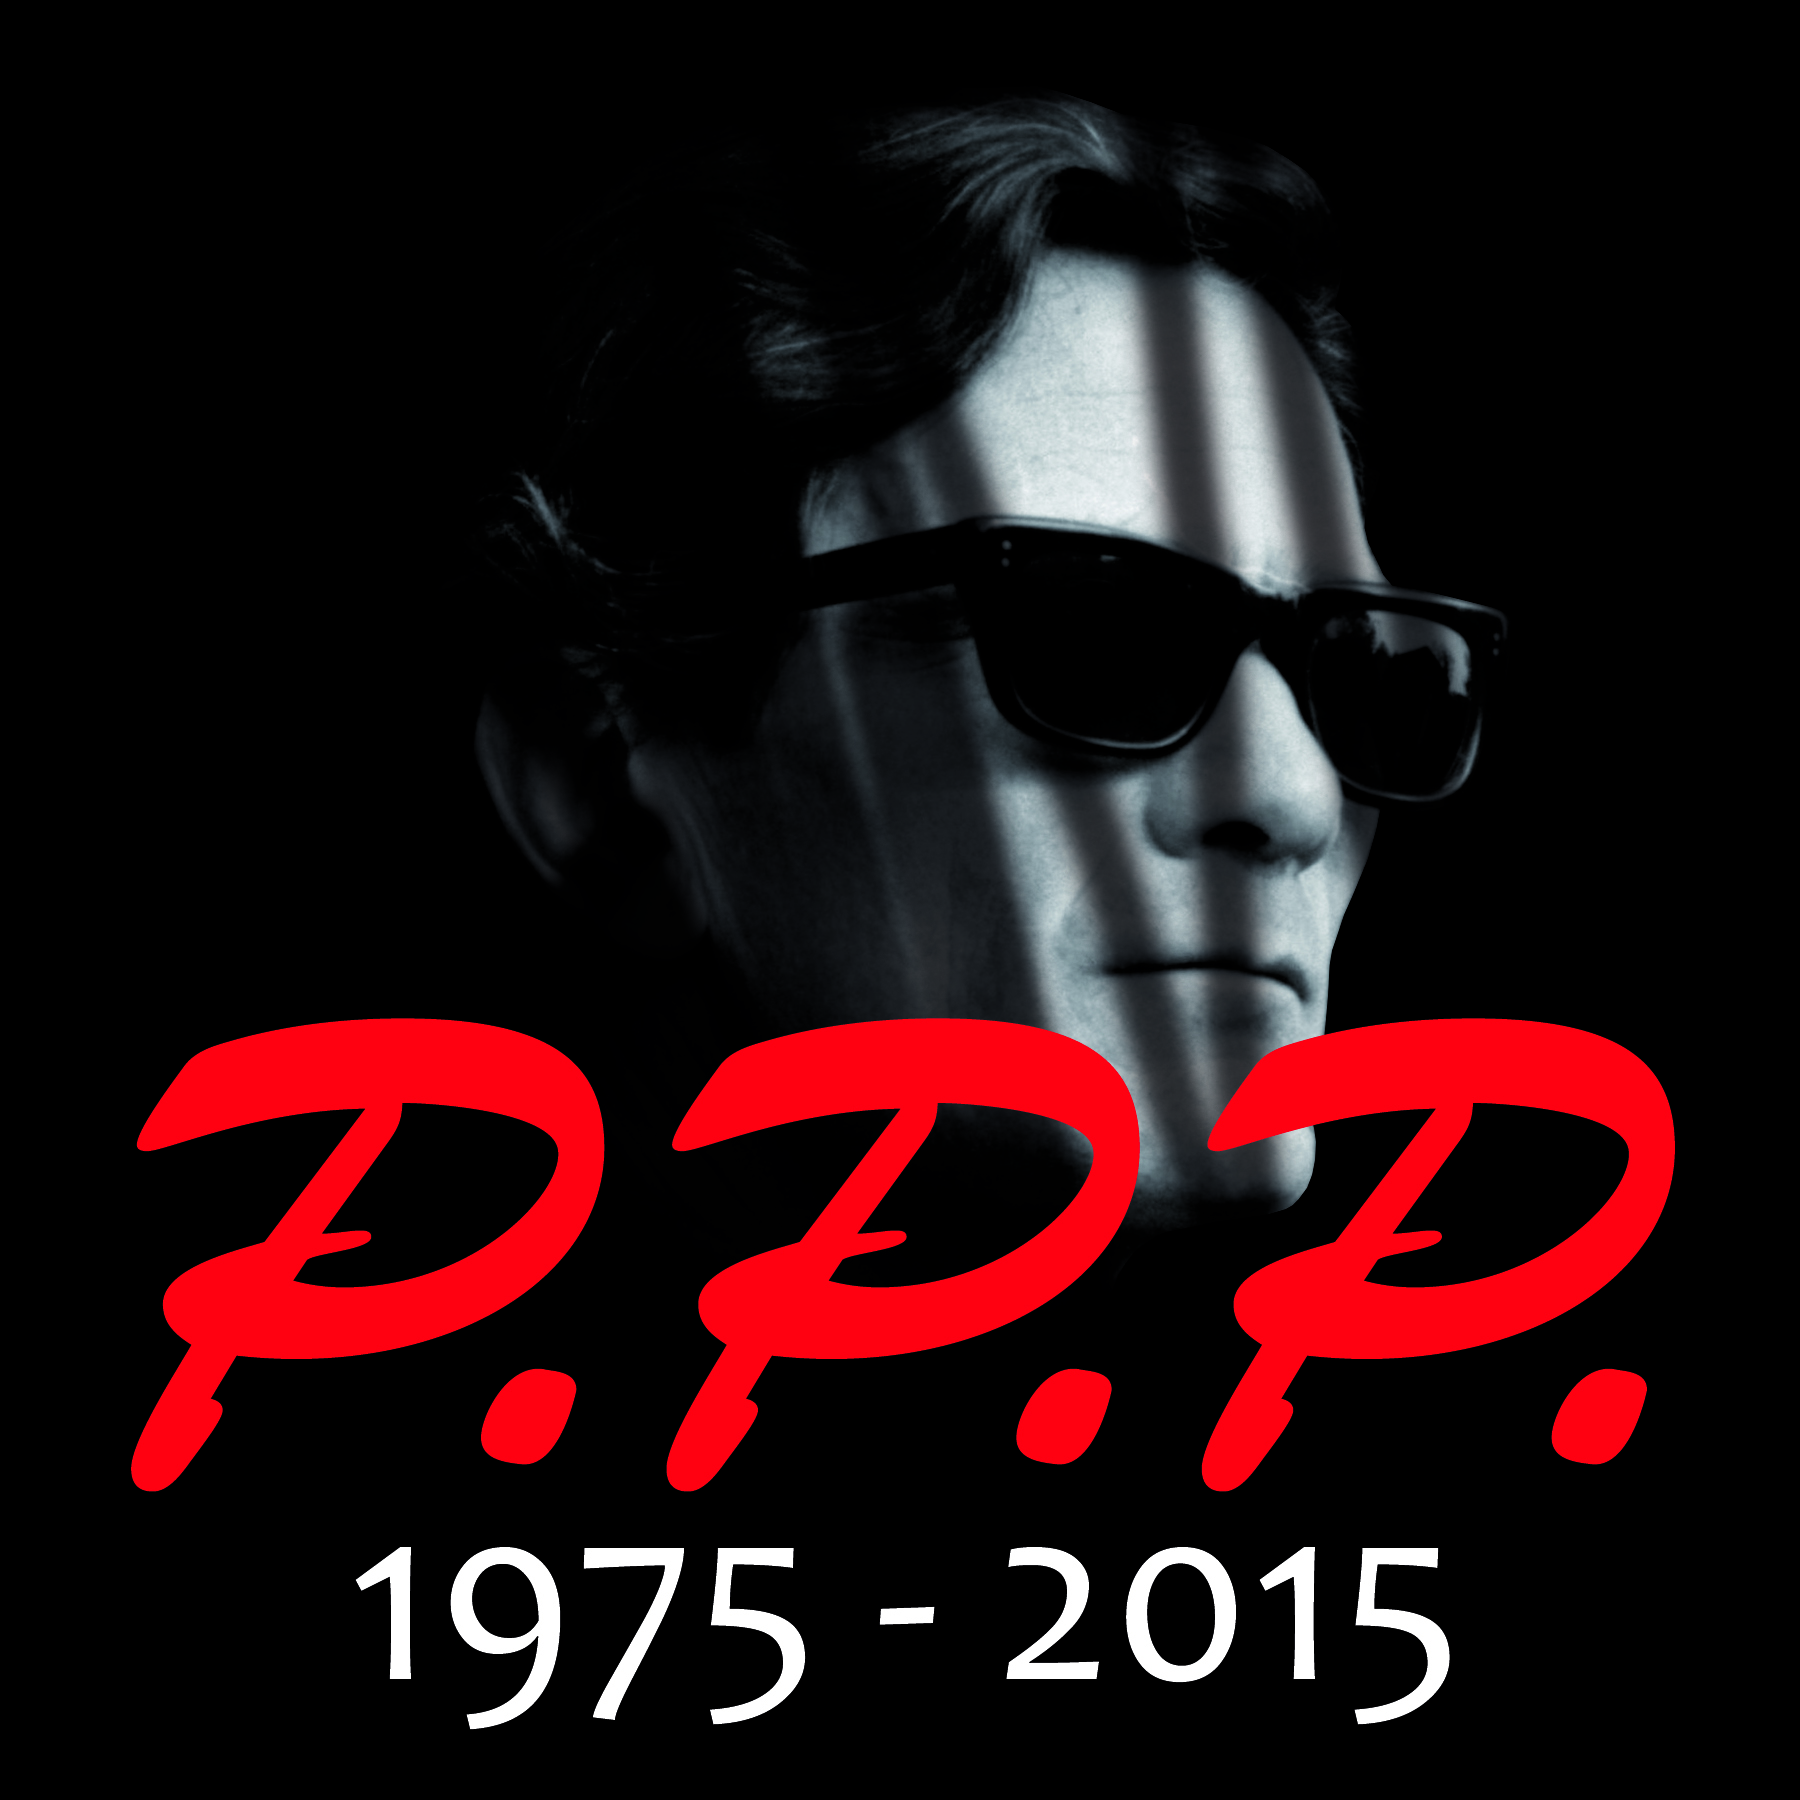 PASOLINI 1975 – 2015 | IL LOGO CELEBRATIVO DI AMEDIT